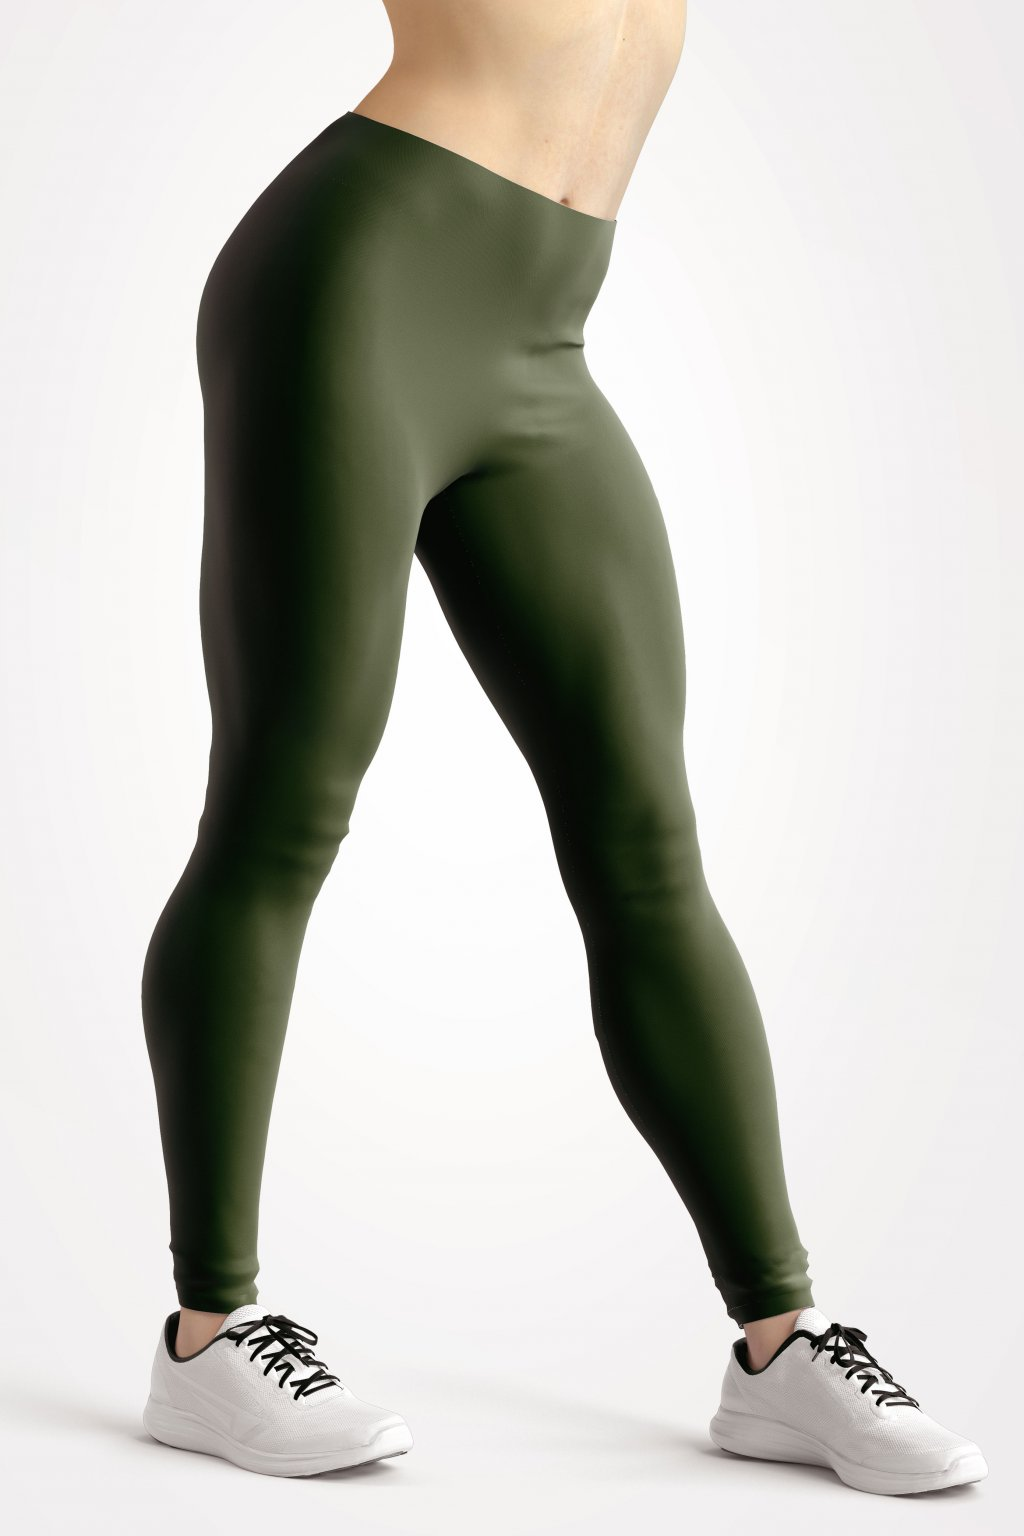 leggings hunter green essentials front side by utopy